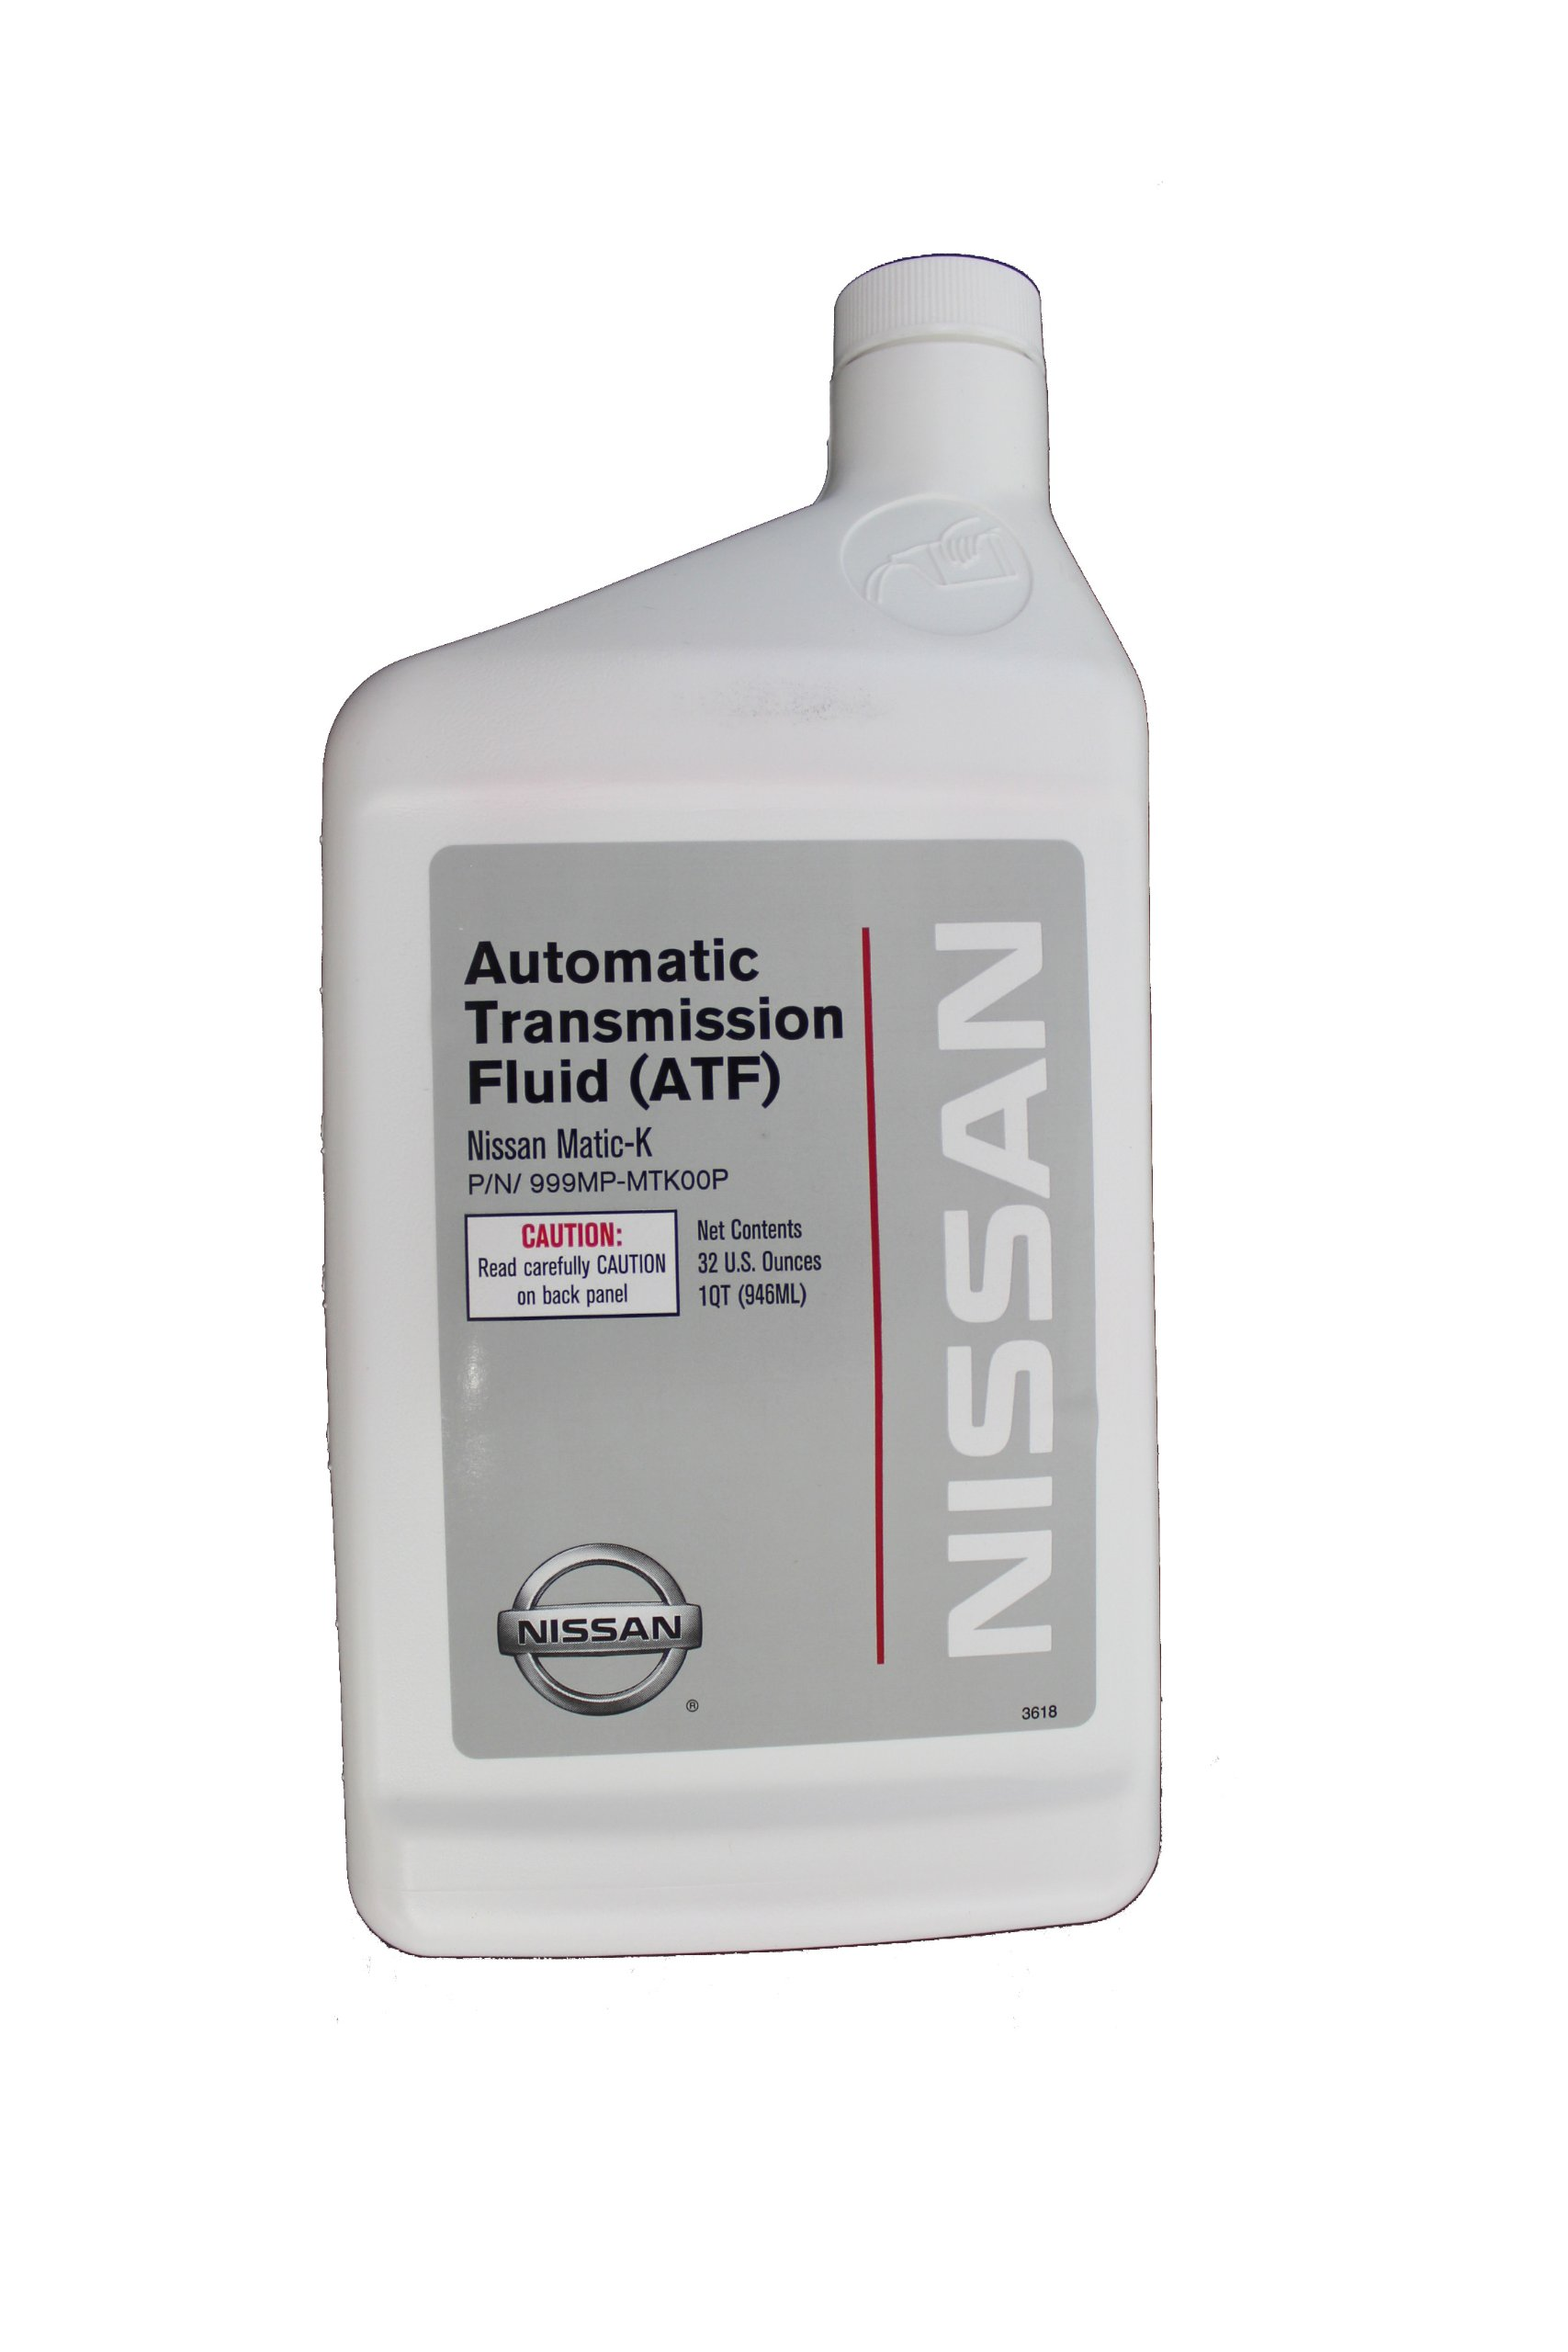 Nissan Genuine Fluid 999MP-MTK00P Matic-K Automatic Transmission Fluid - 1 Quart